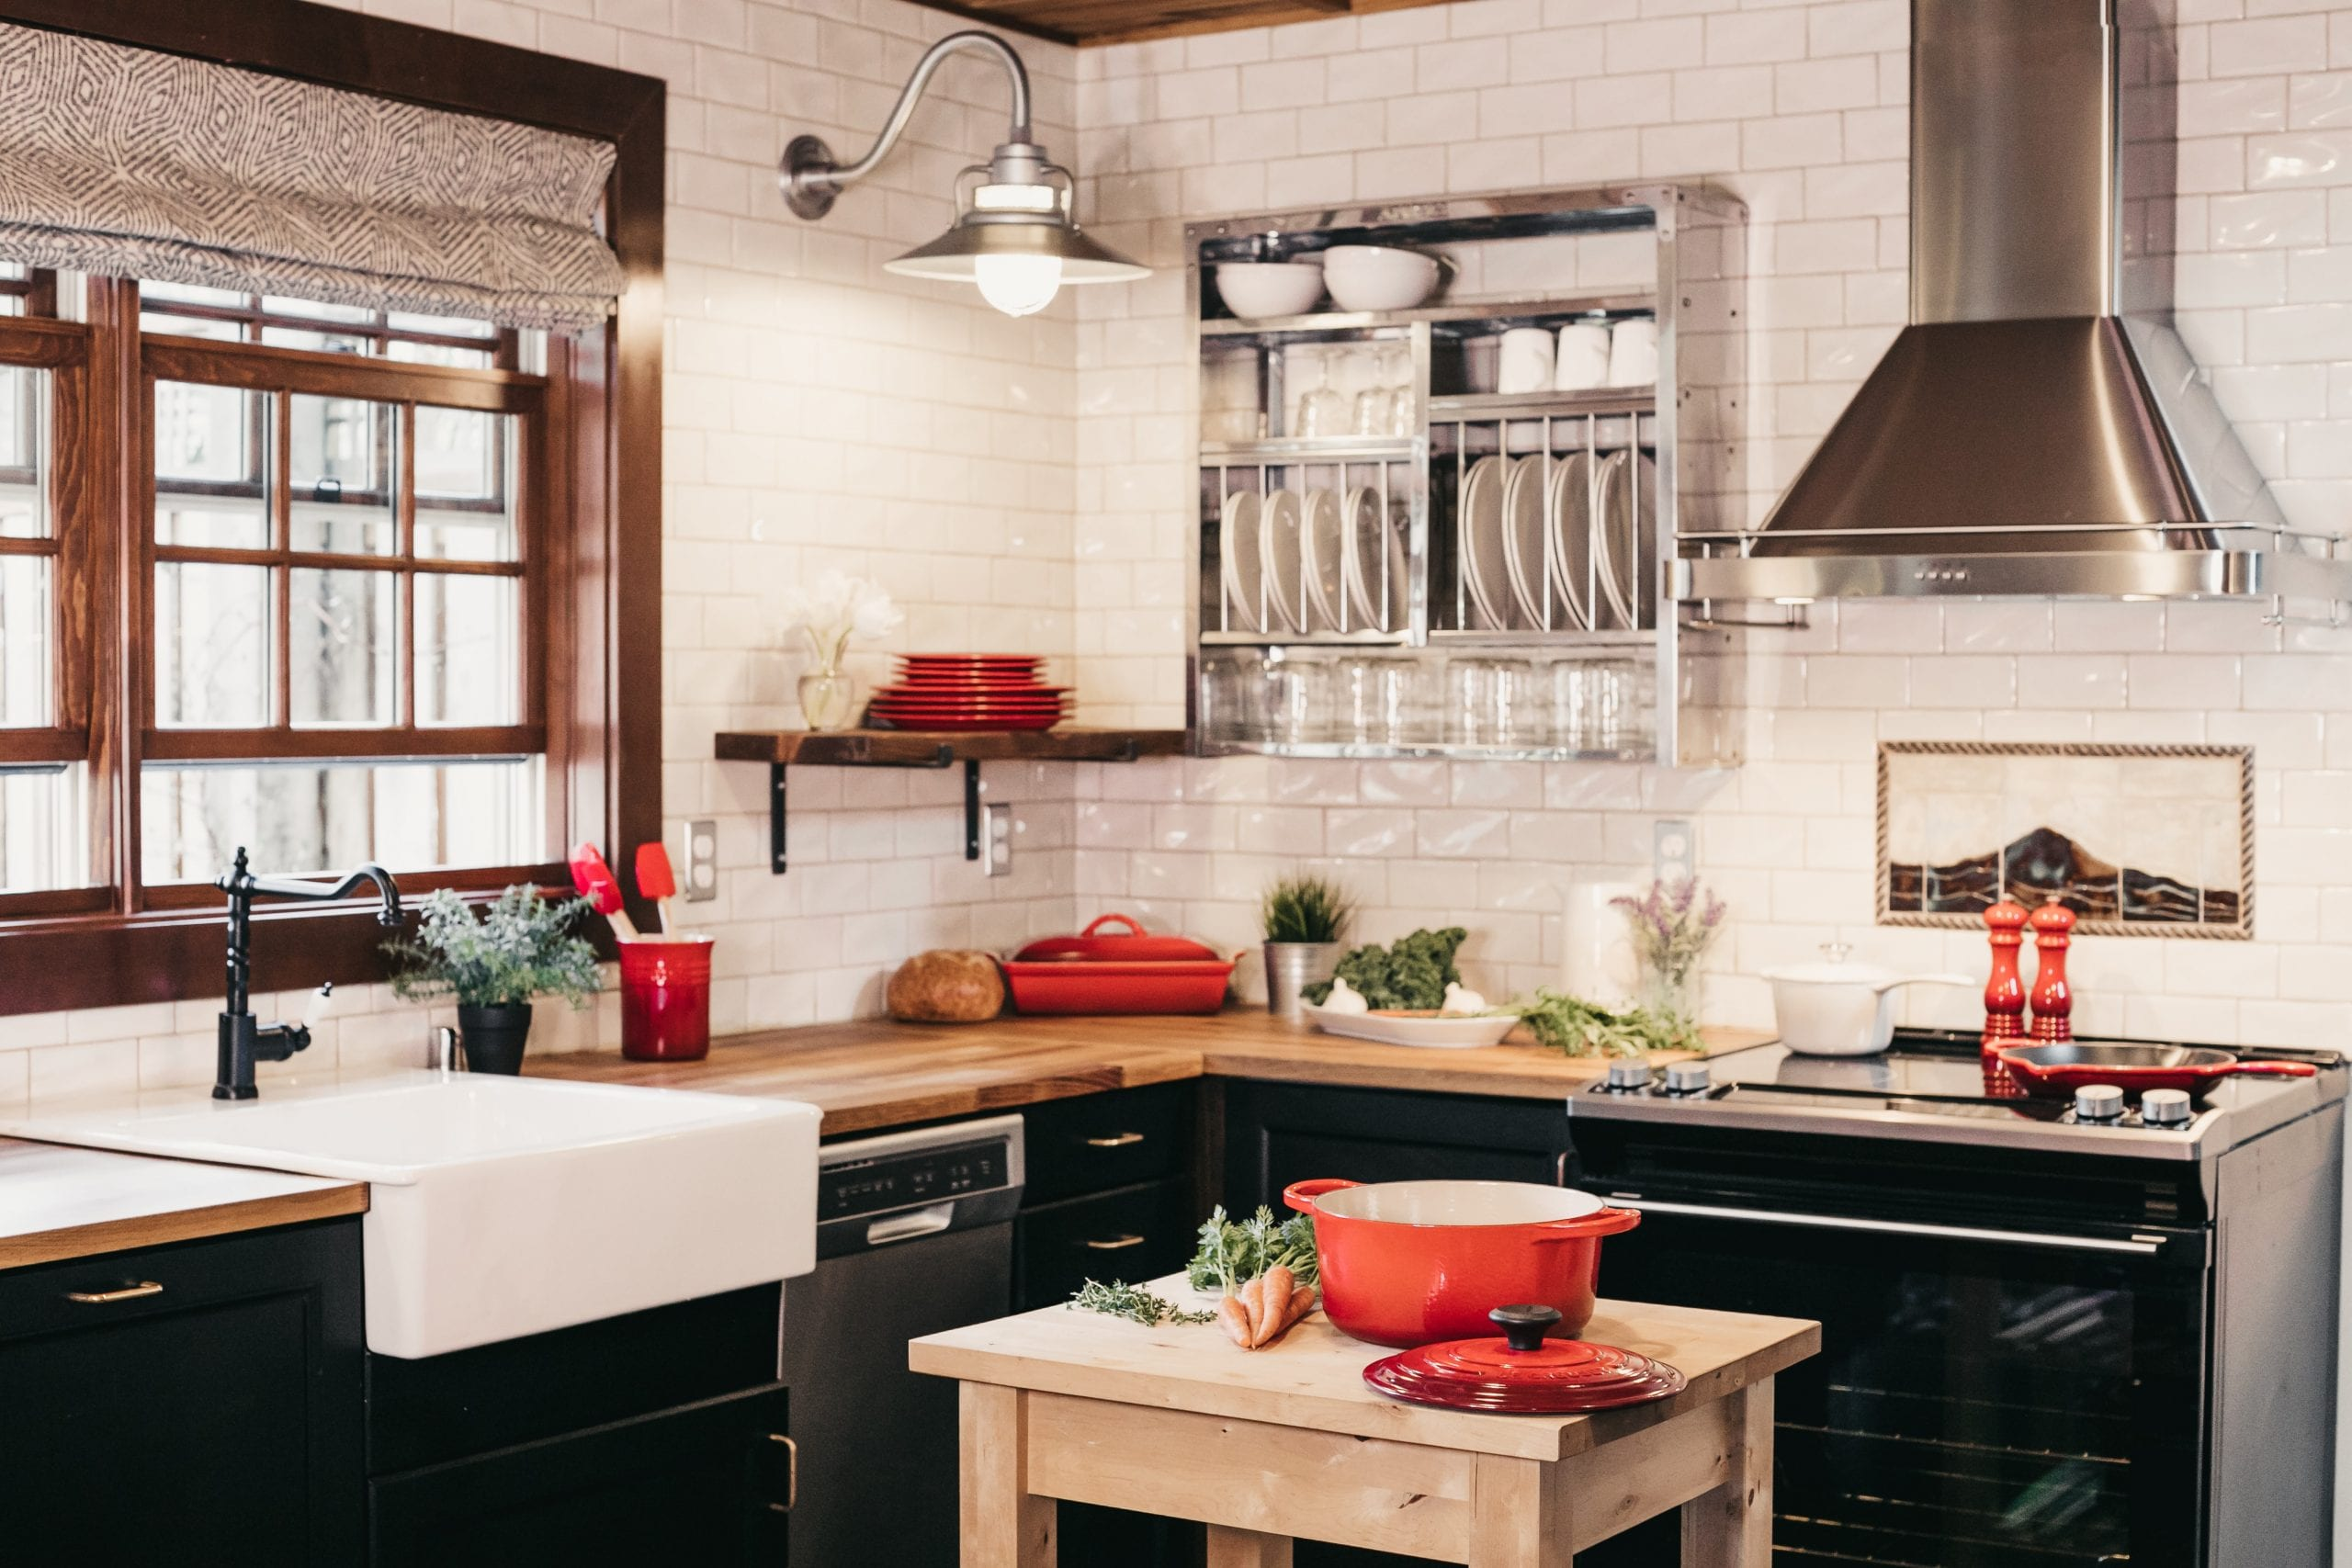 Contemporary kitchen with black cabinets, white walls, wooden countertops, and red kitchen tools